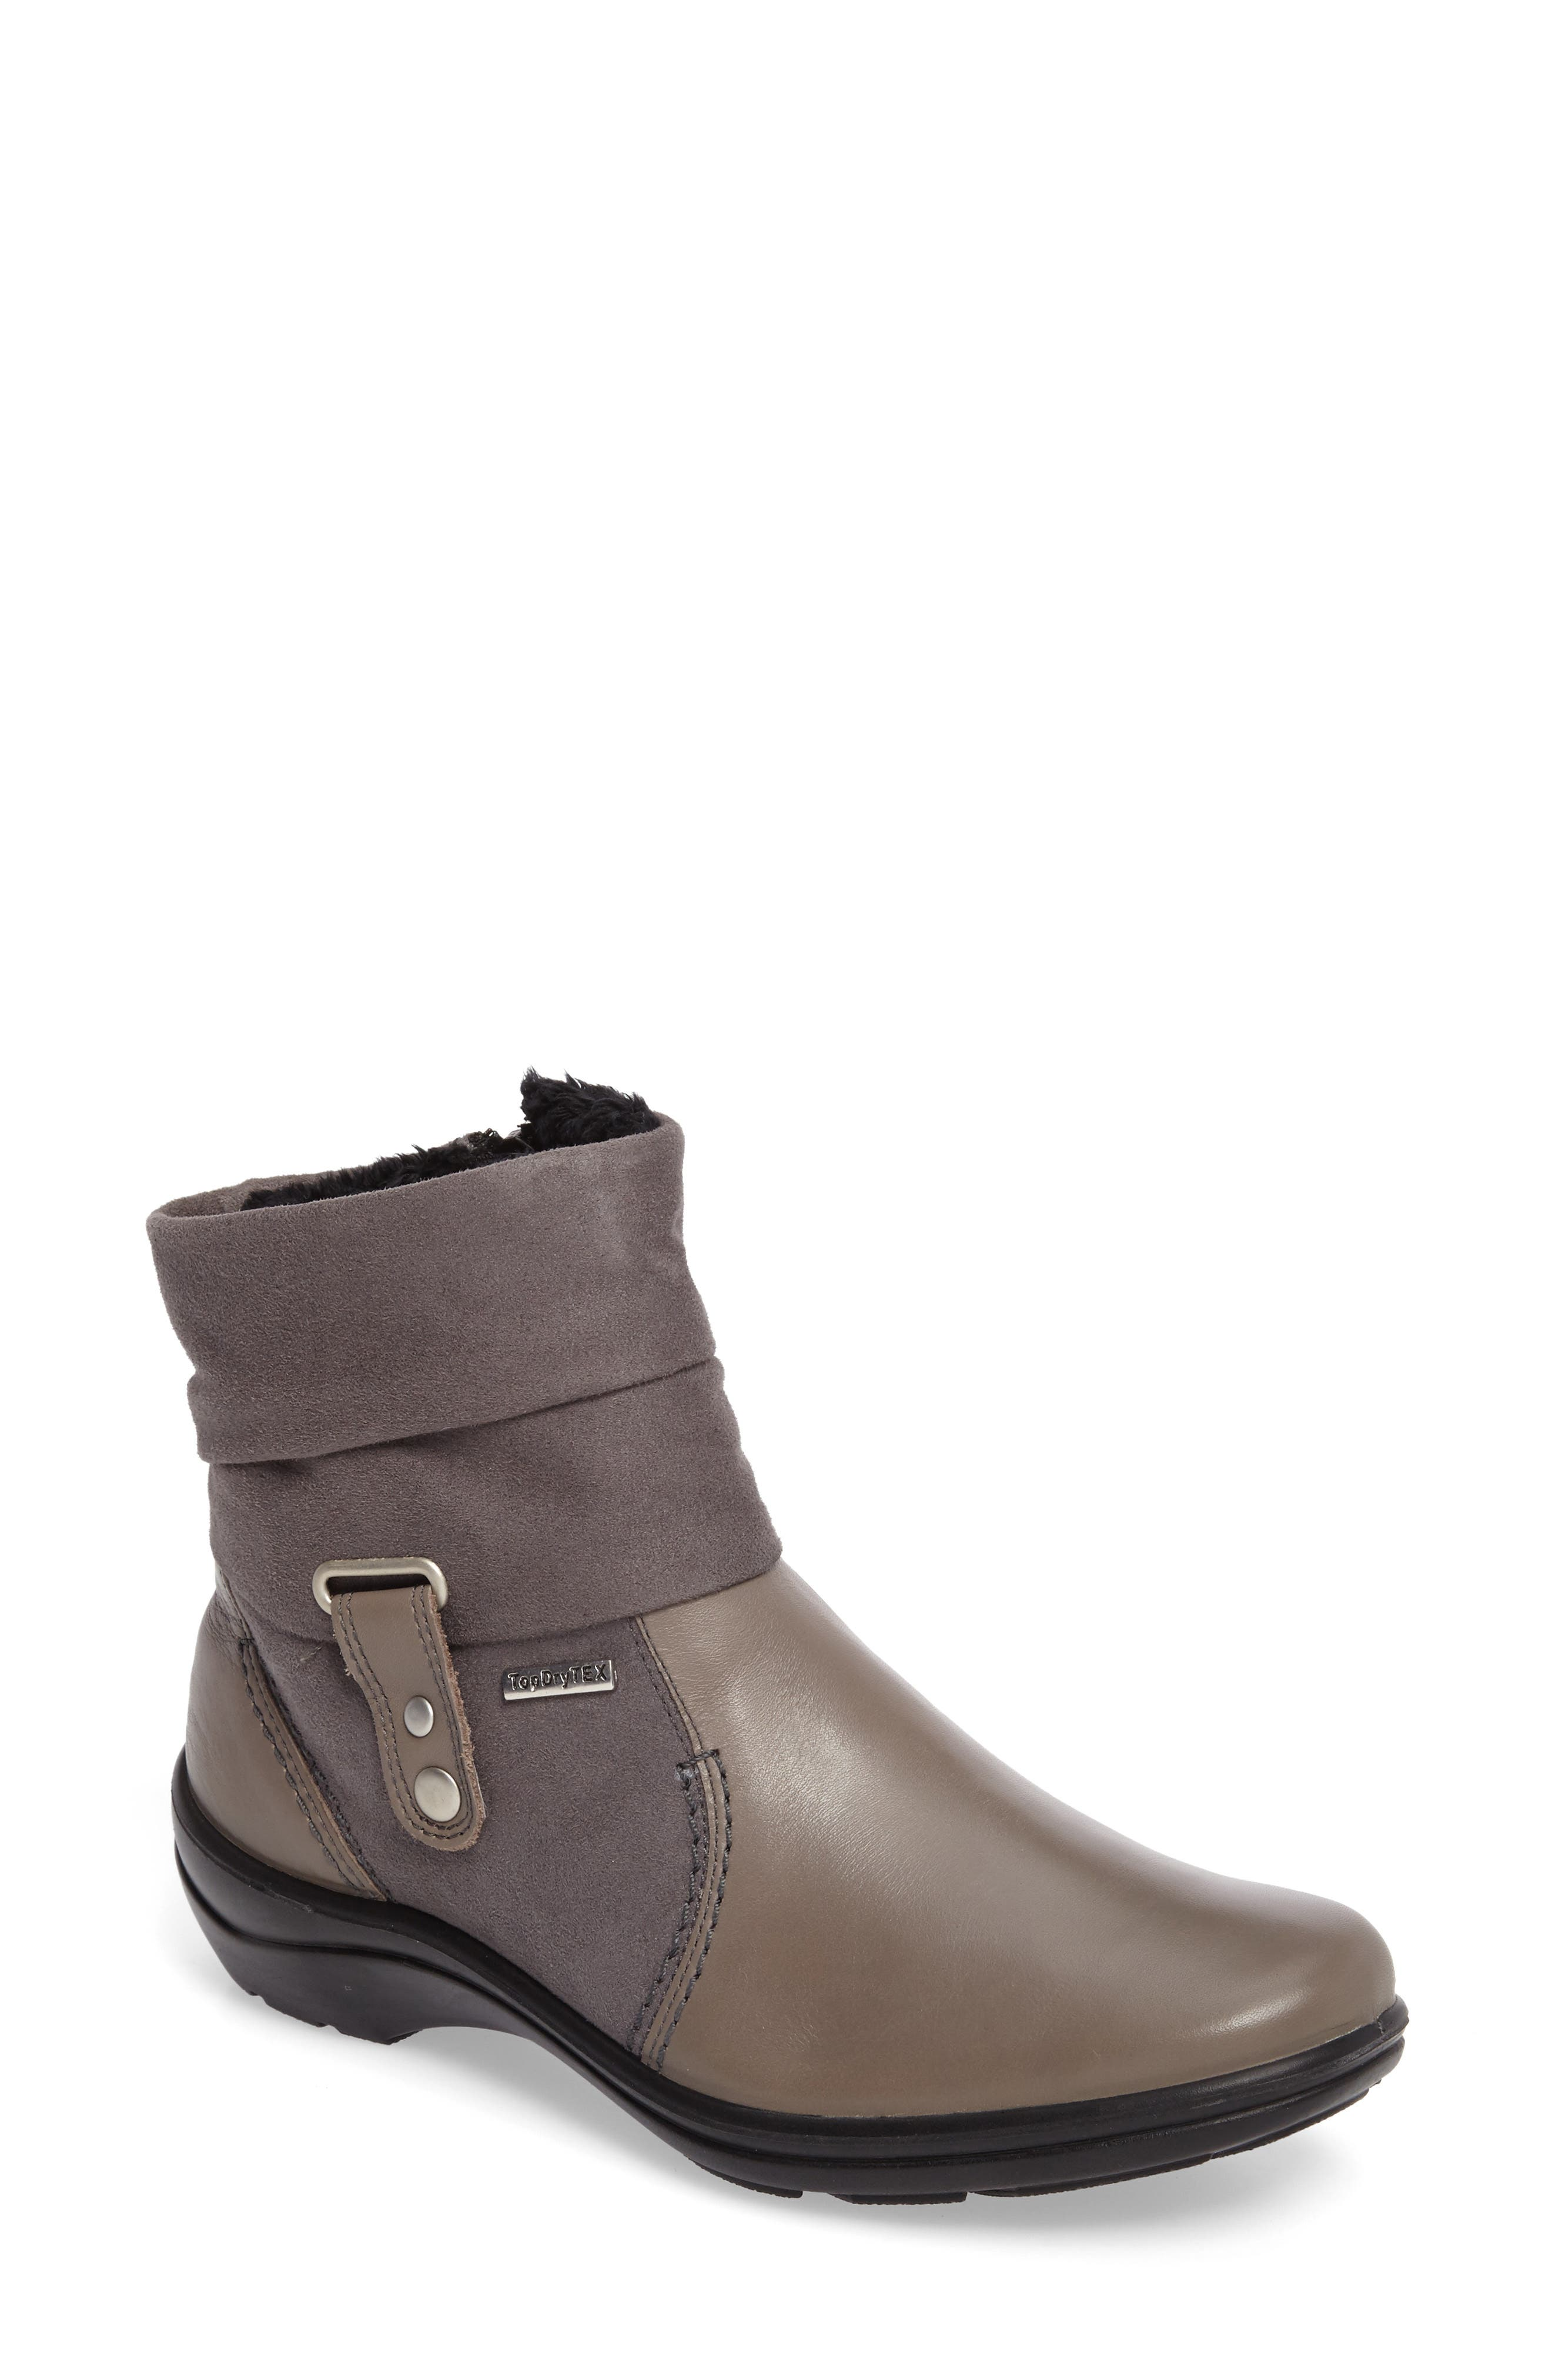 'Cassie 12' Boot,                         Main,                         color, Grey Leather